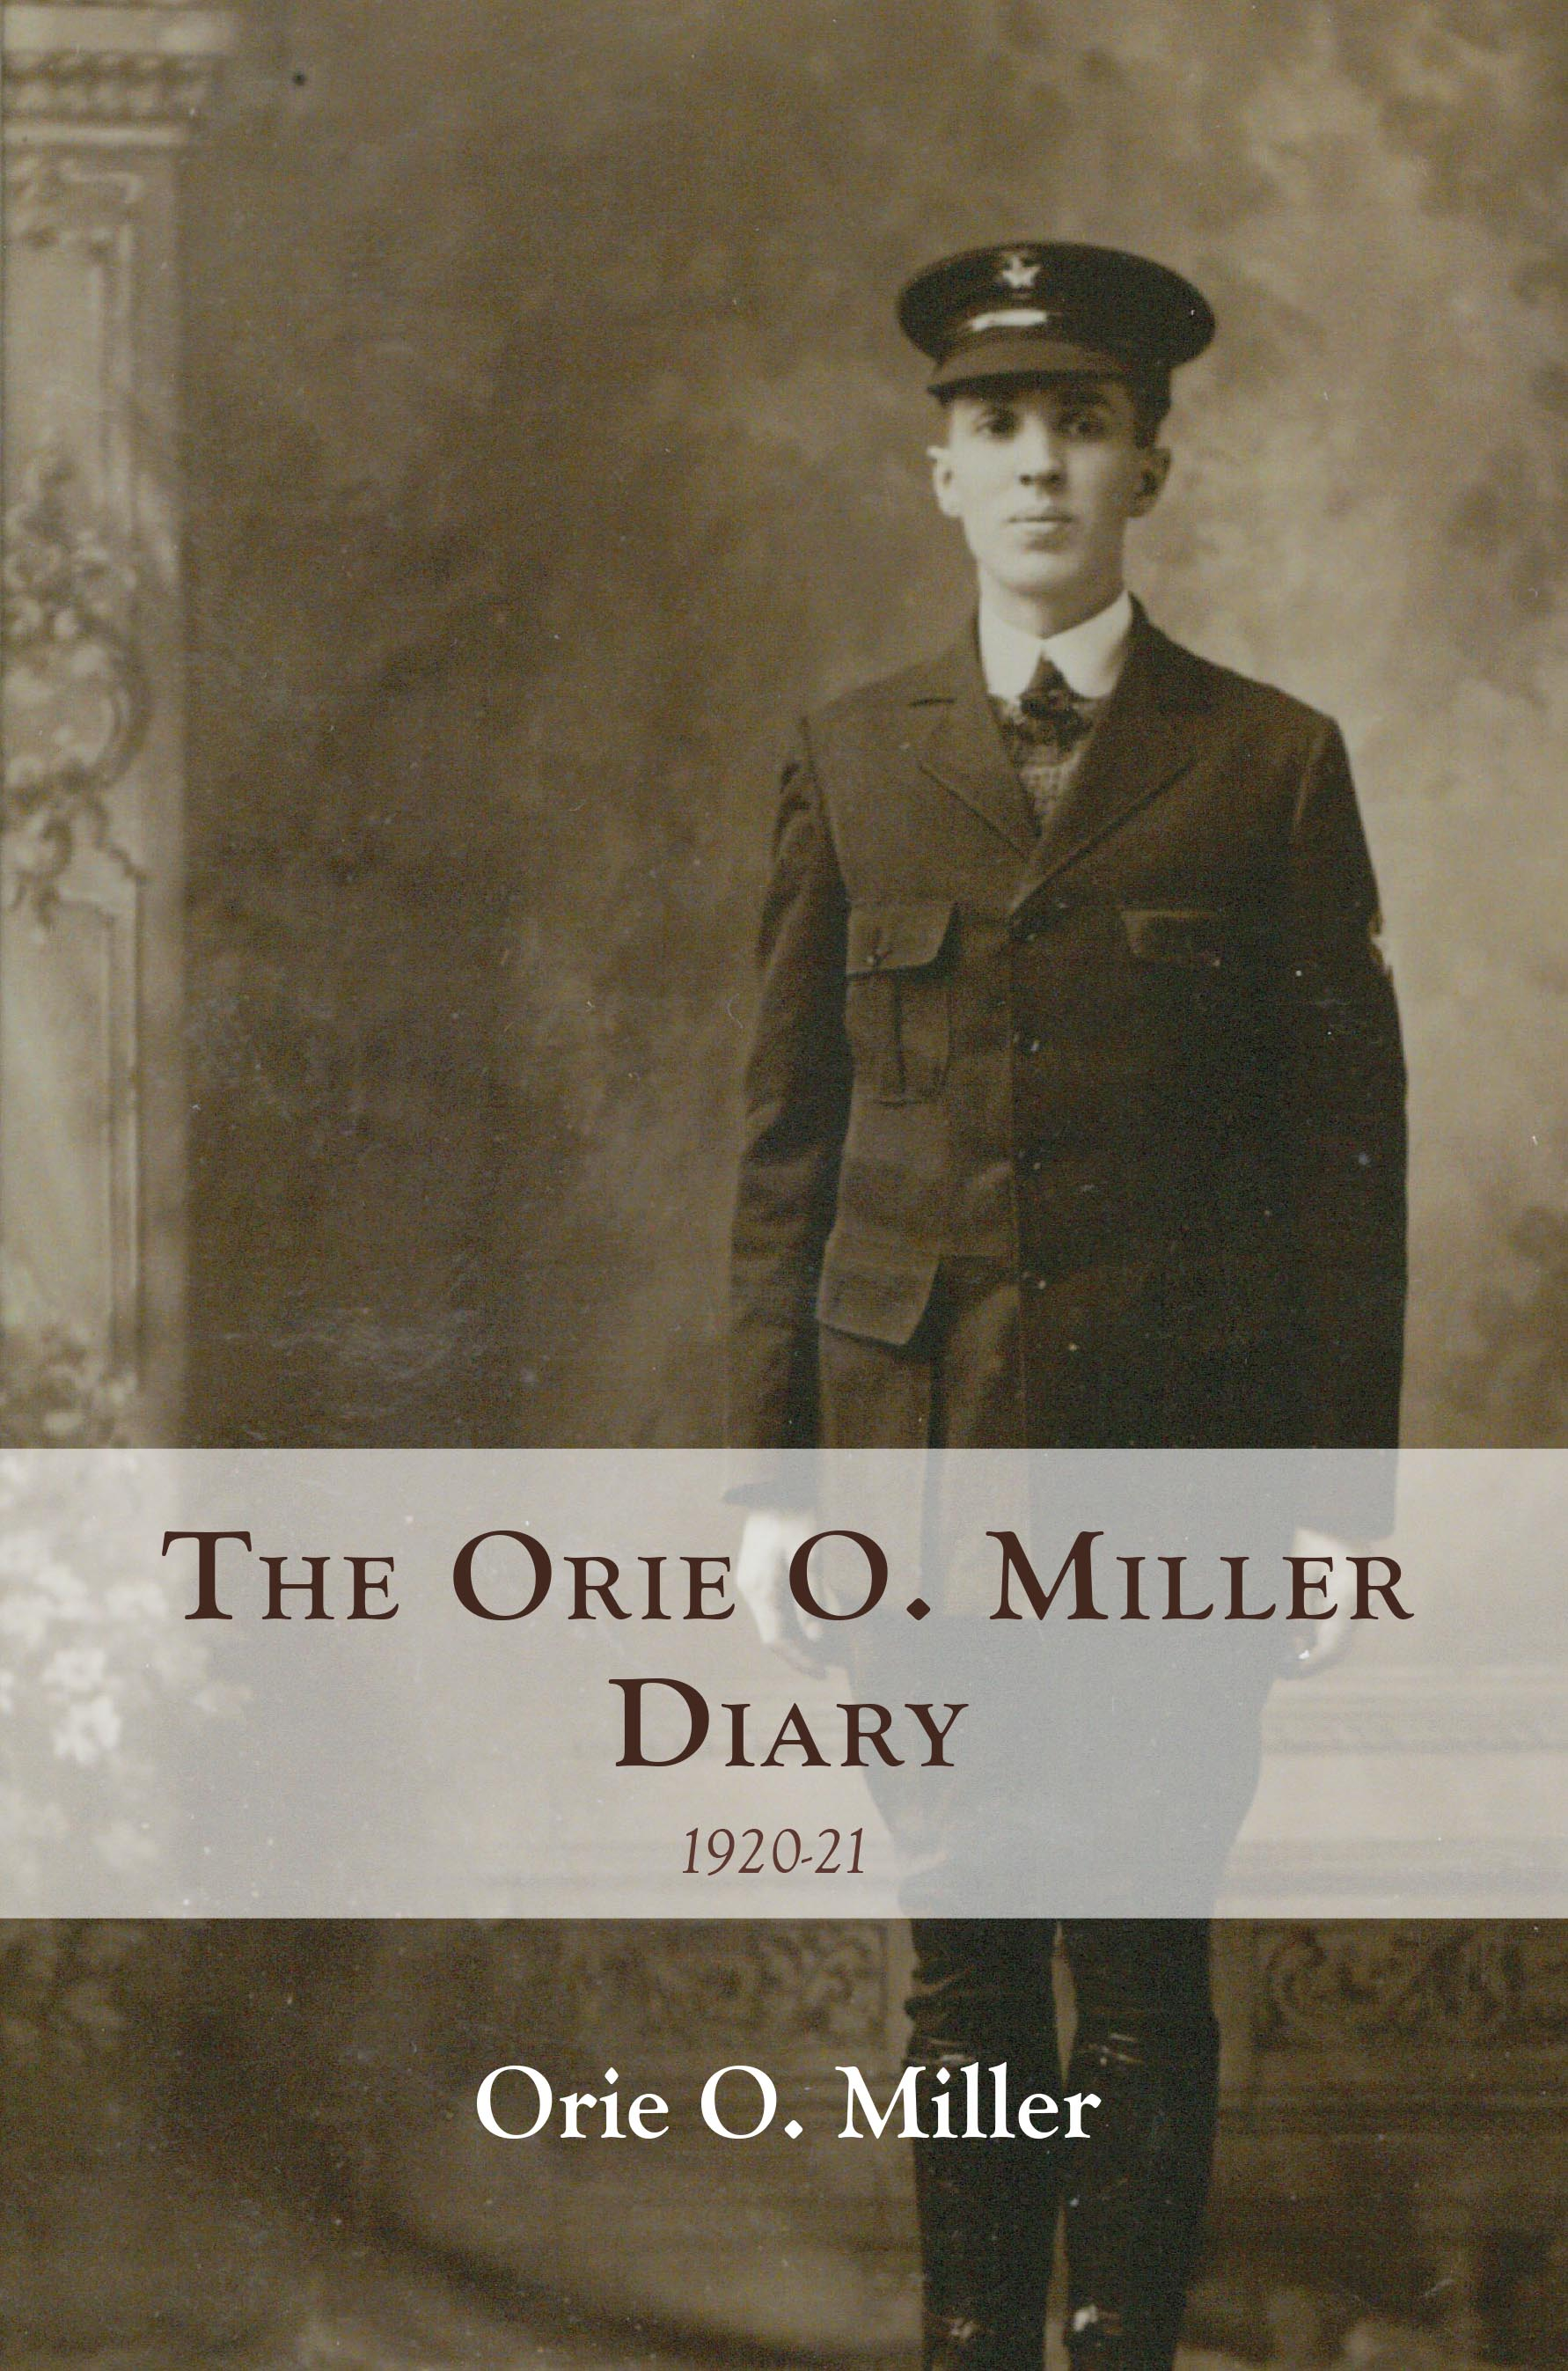 The Orie O. Miller Diary, 1920-21